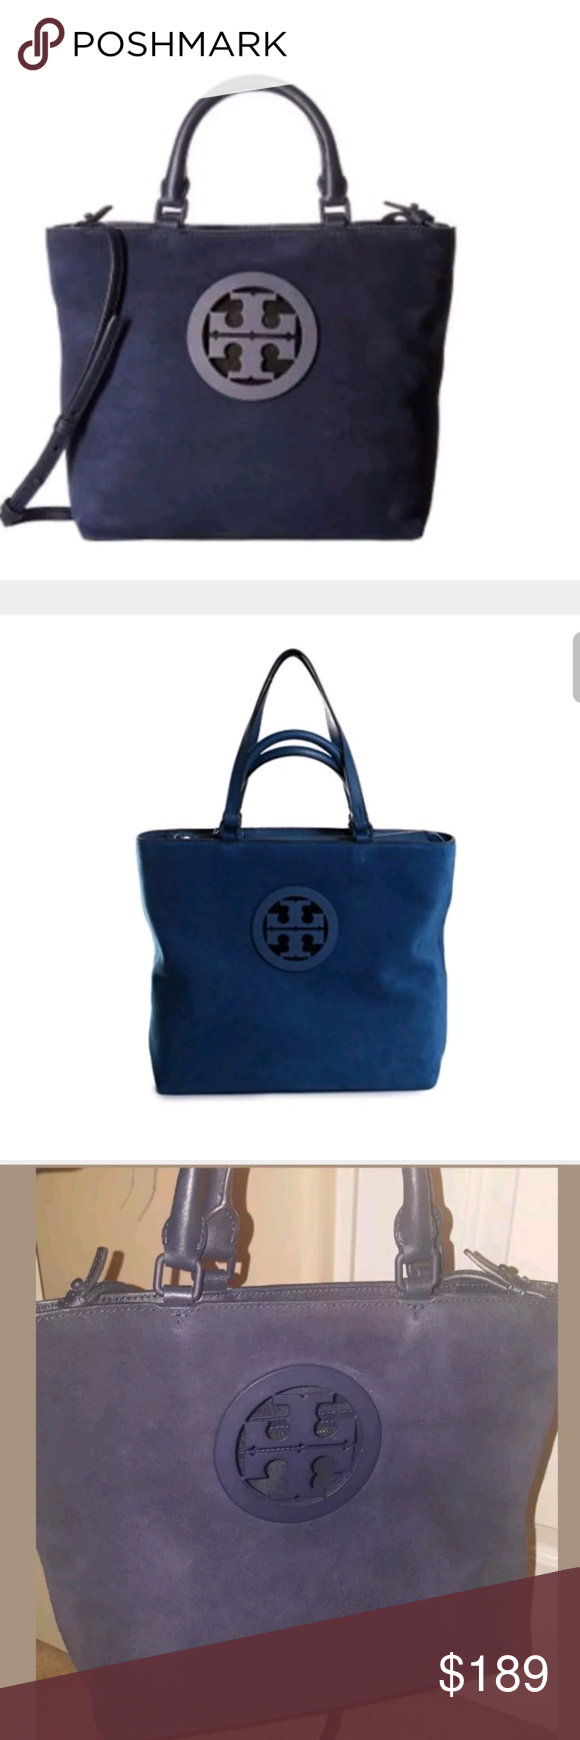 1824d13d03d Tory Burch  Charlie  Small Suede Tote A peekaboo stacked-T logo medallion  brands